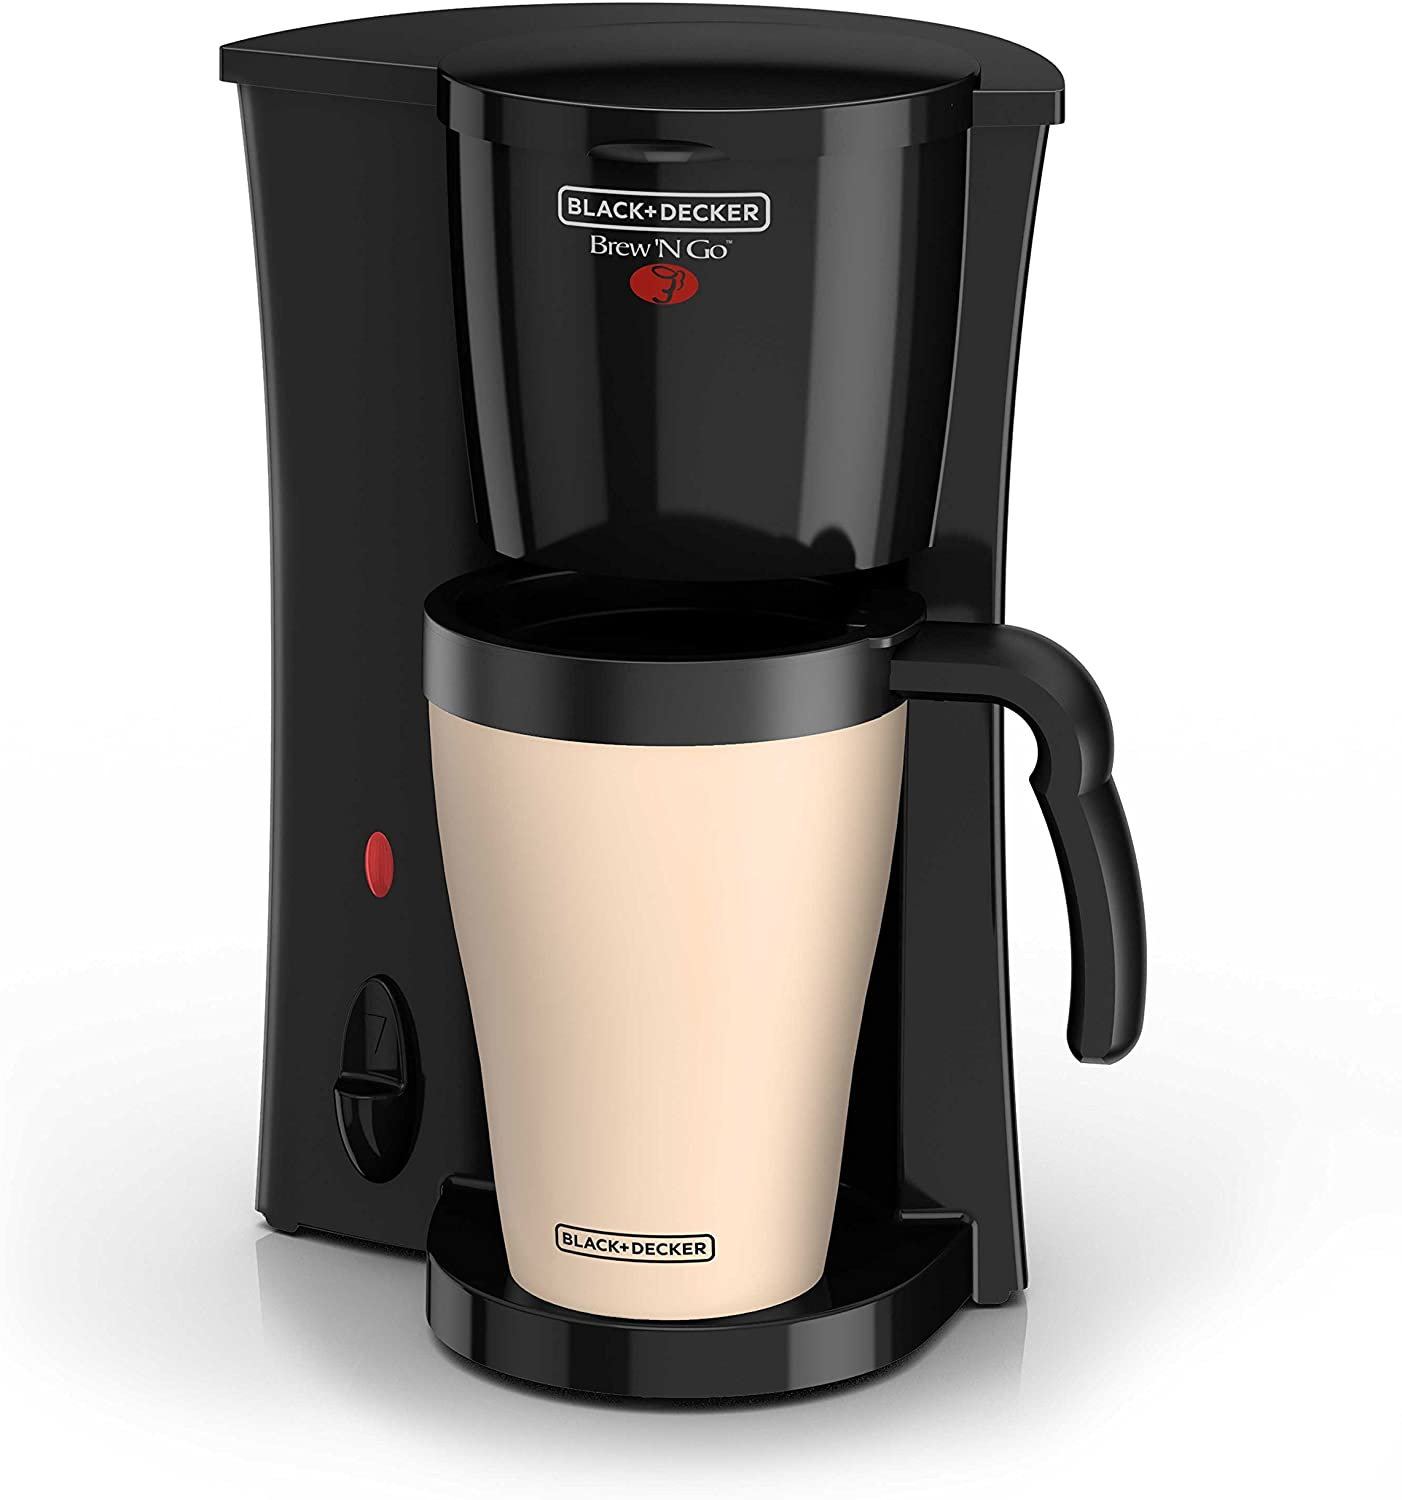 The 5 best coffee makers for one person -Personal coffee maker (Reviews of 2020) 2